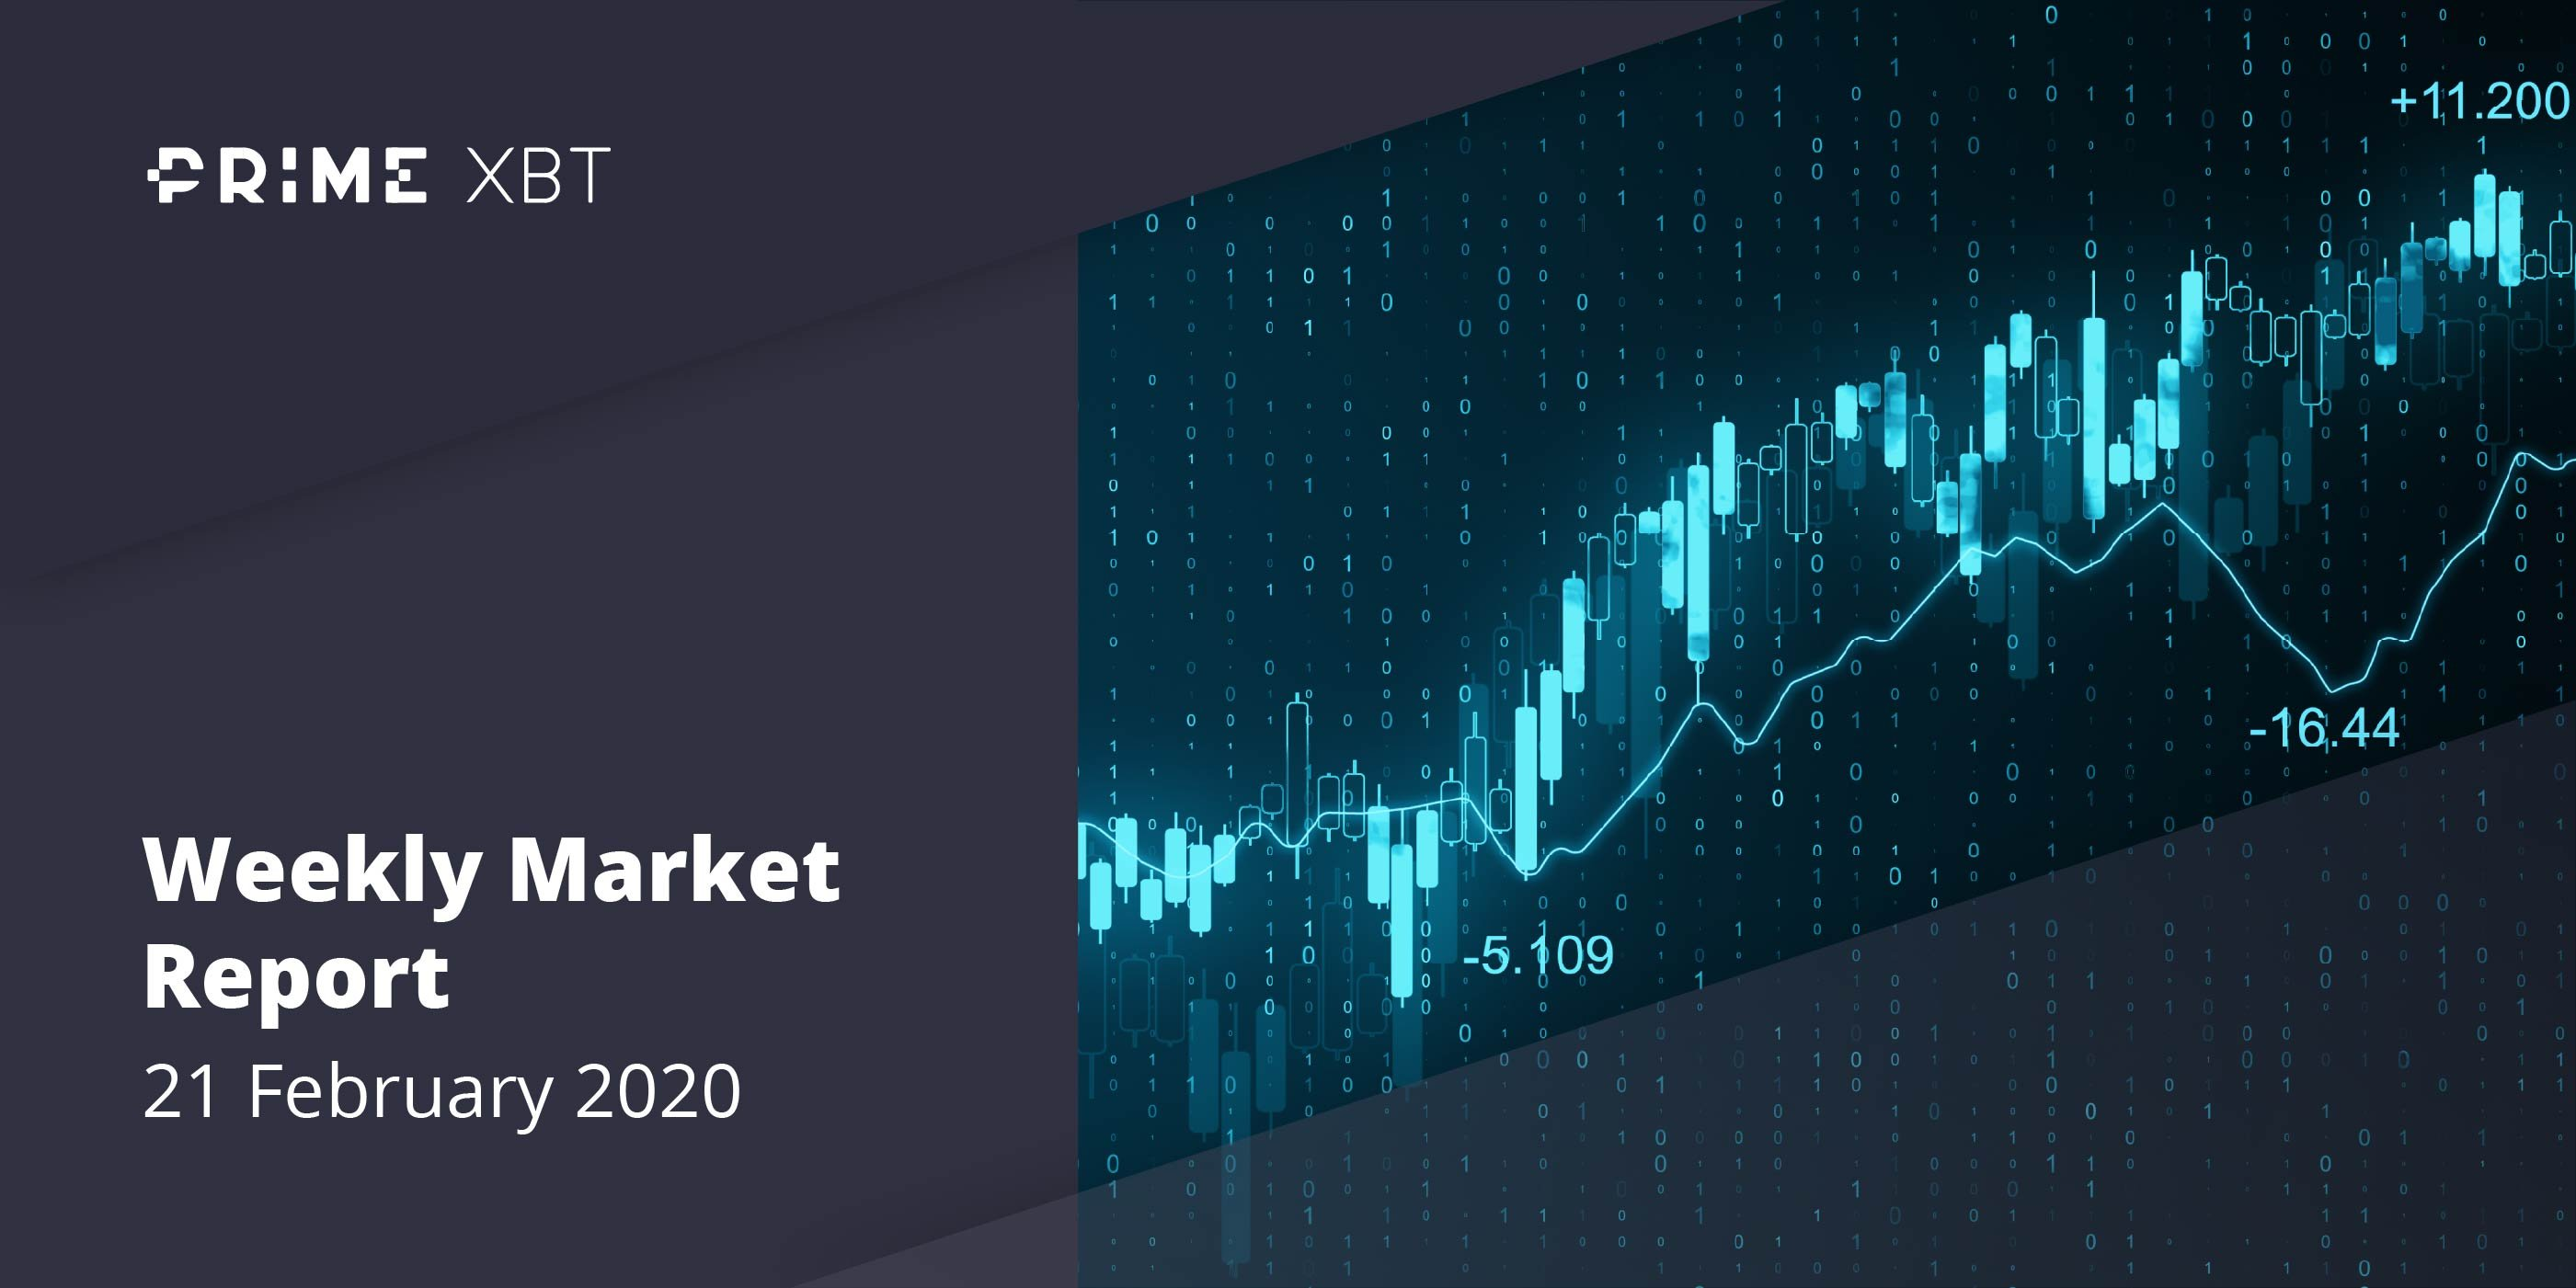 Crypto Market Report: Bitcoin's First Red Week, DeFi Under Pressure, But BTC Volume Keep Rising with Institutional Interest - 21.02.20